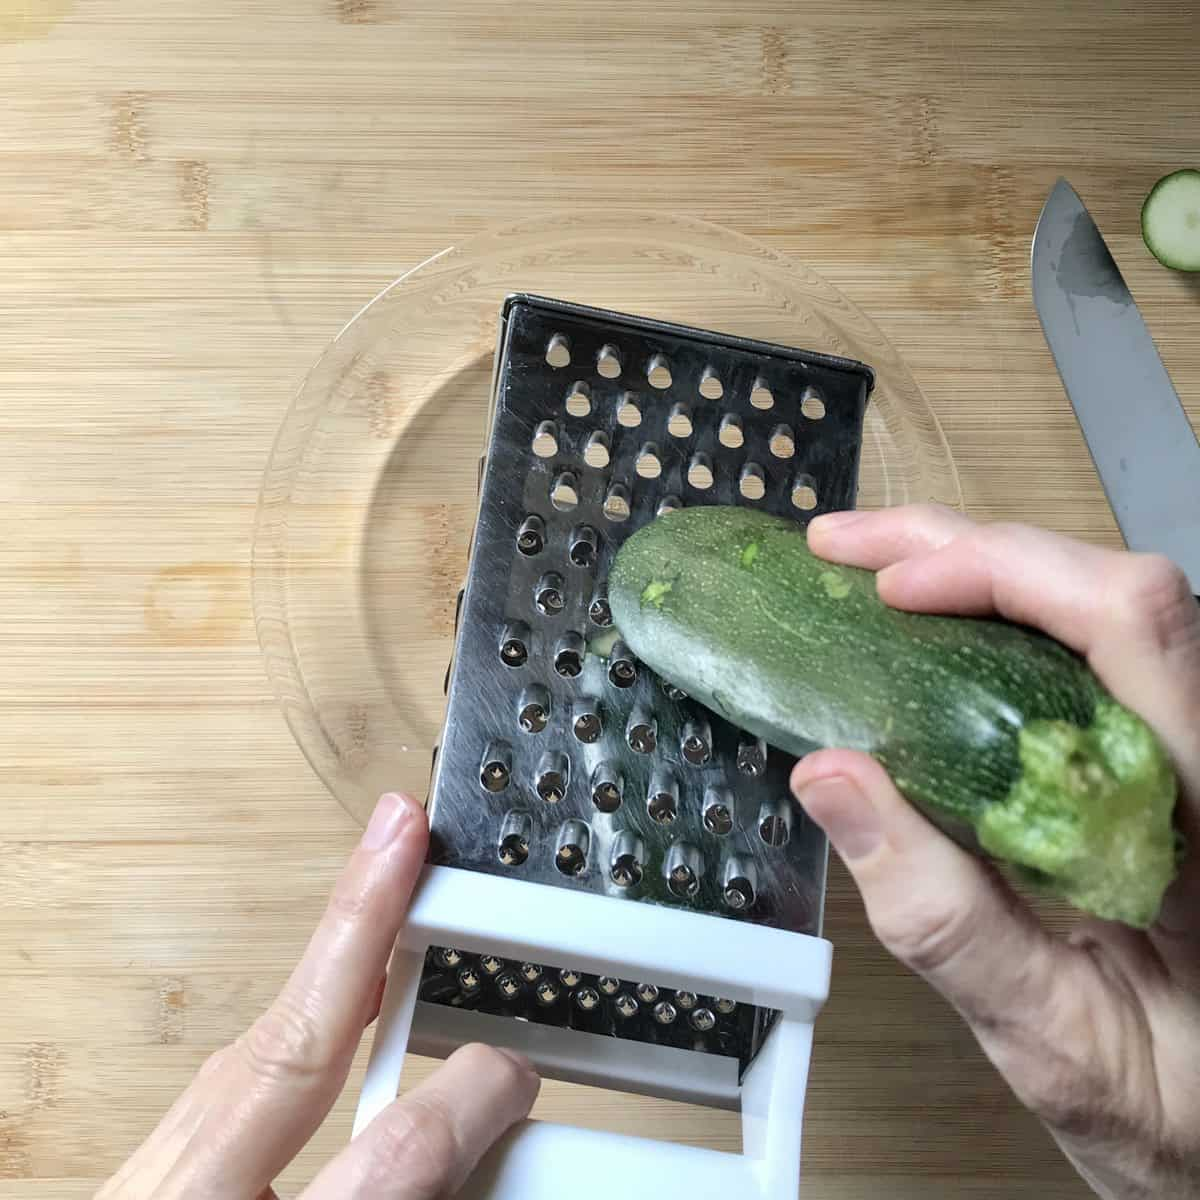 Zucchini being grated with a box grater.